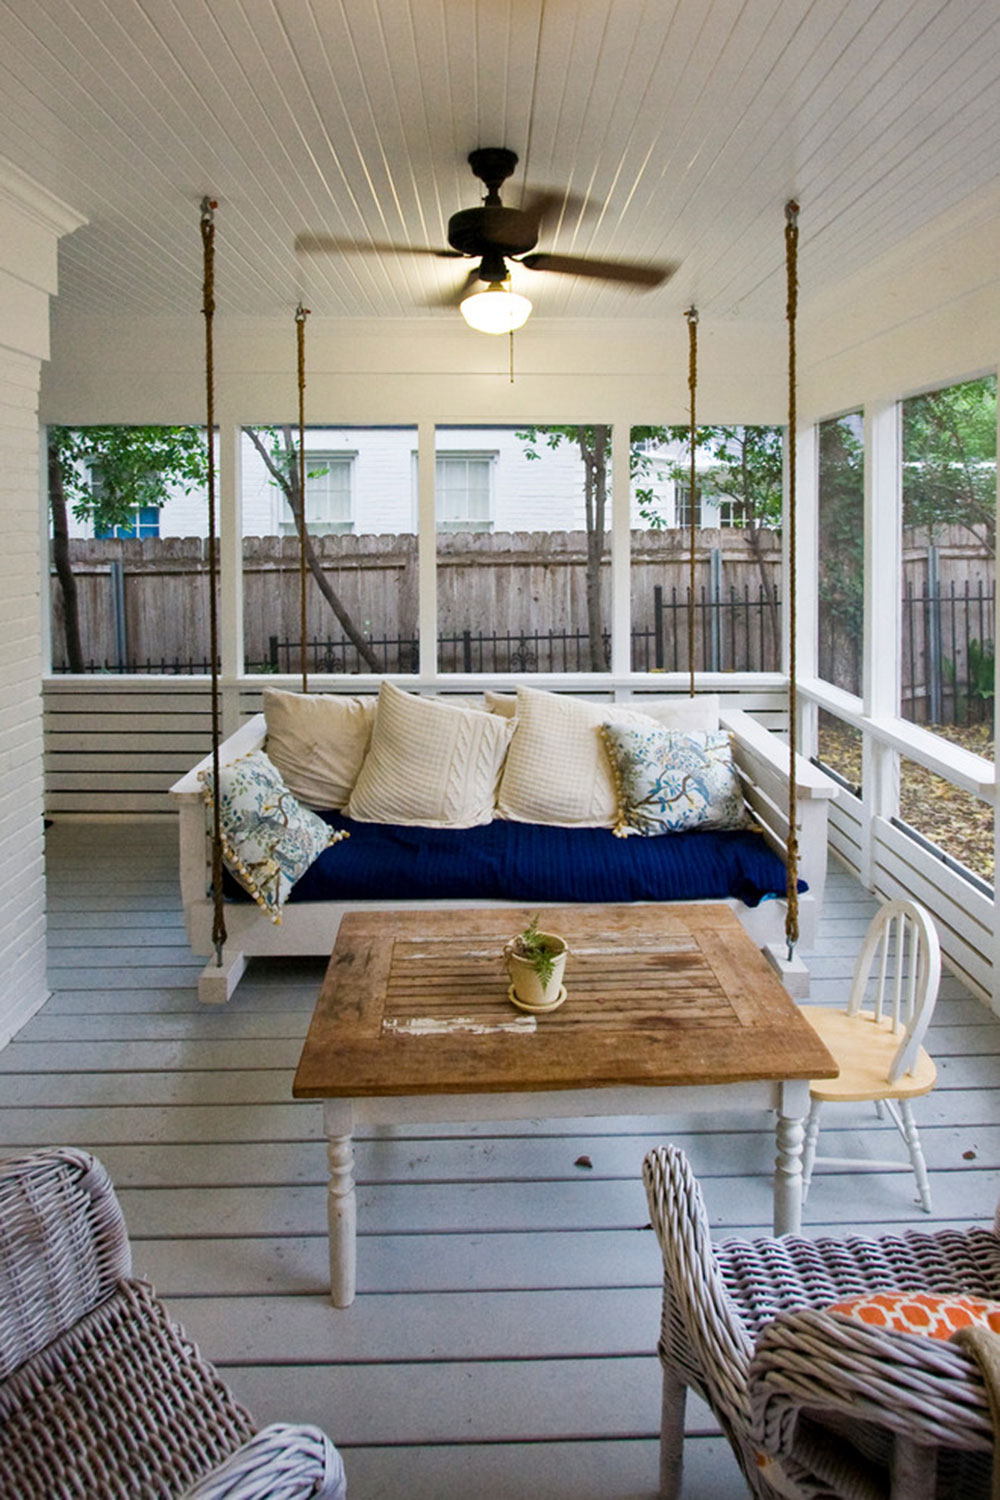 Design Hanging Beds creative hanging beds ideas for amazing homes homes2 beds